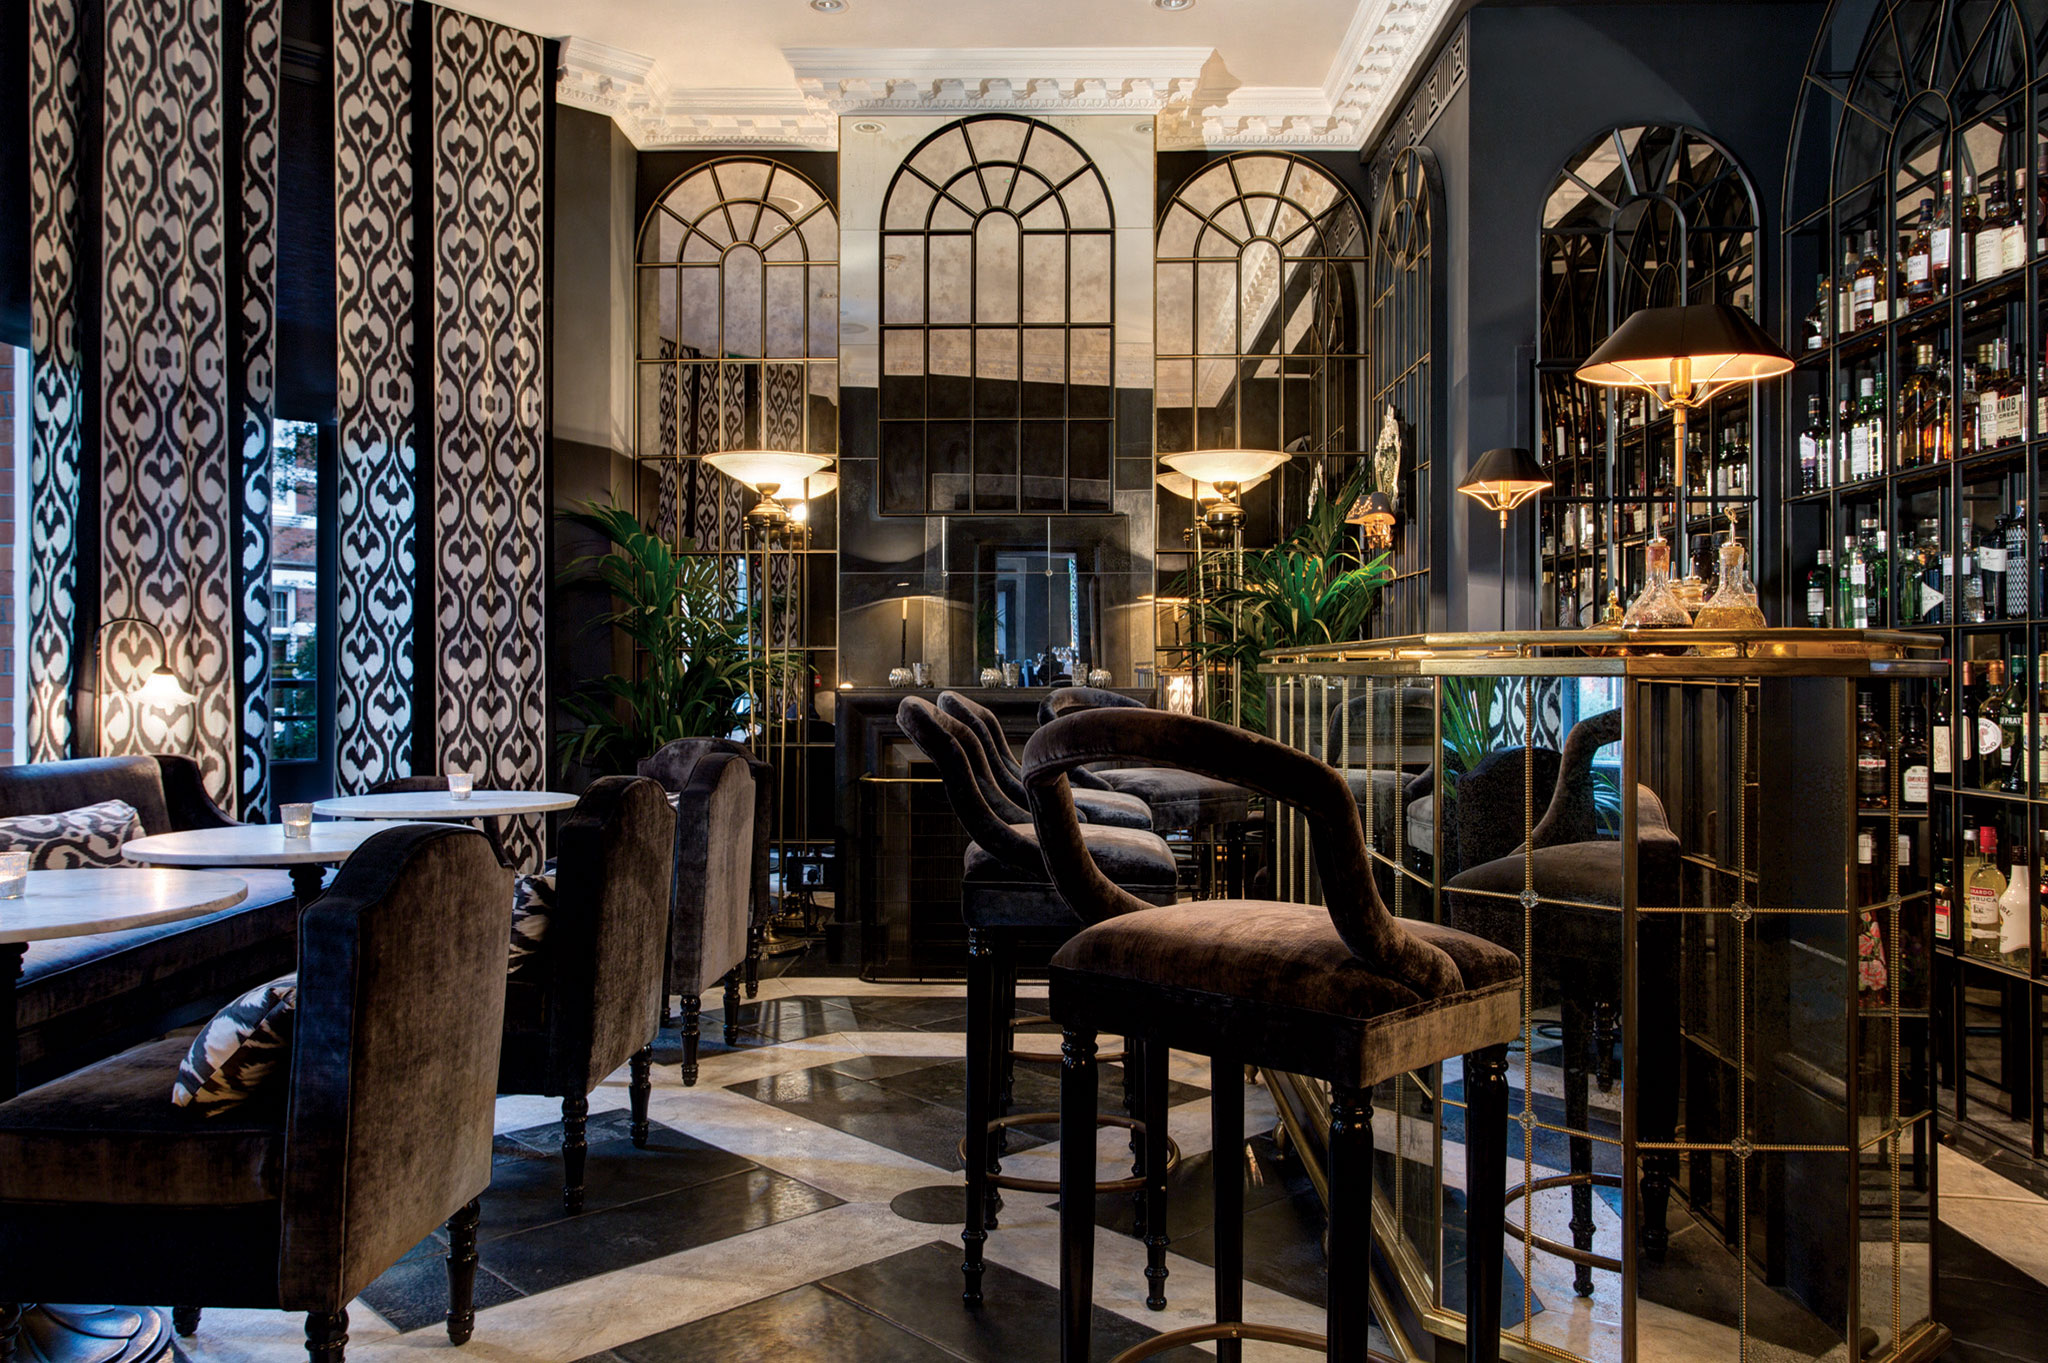 Photo Credit: The Franklin Hotel